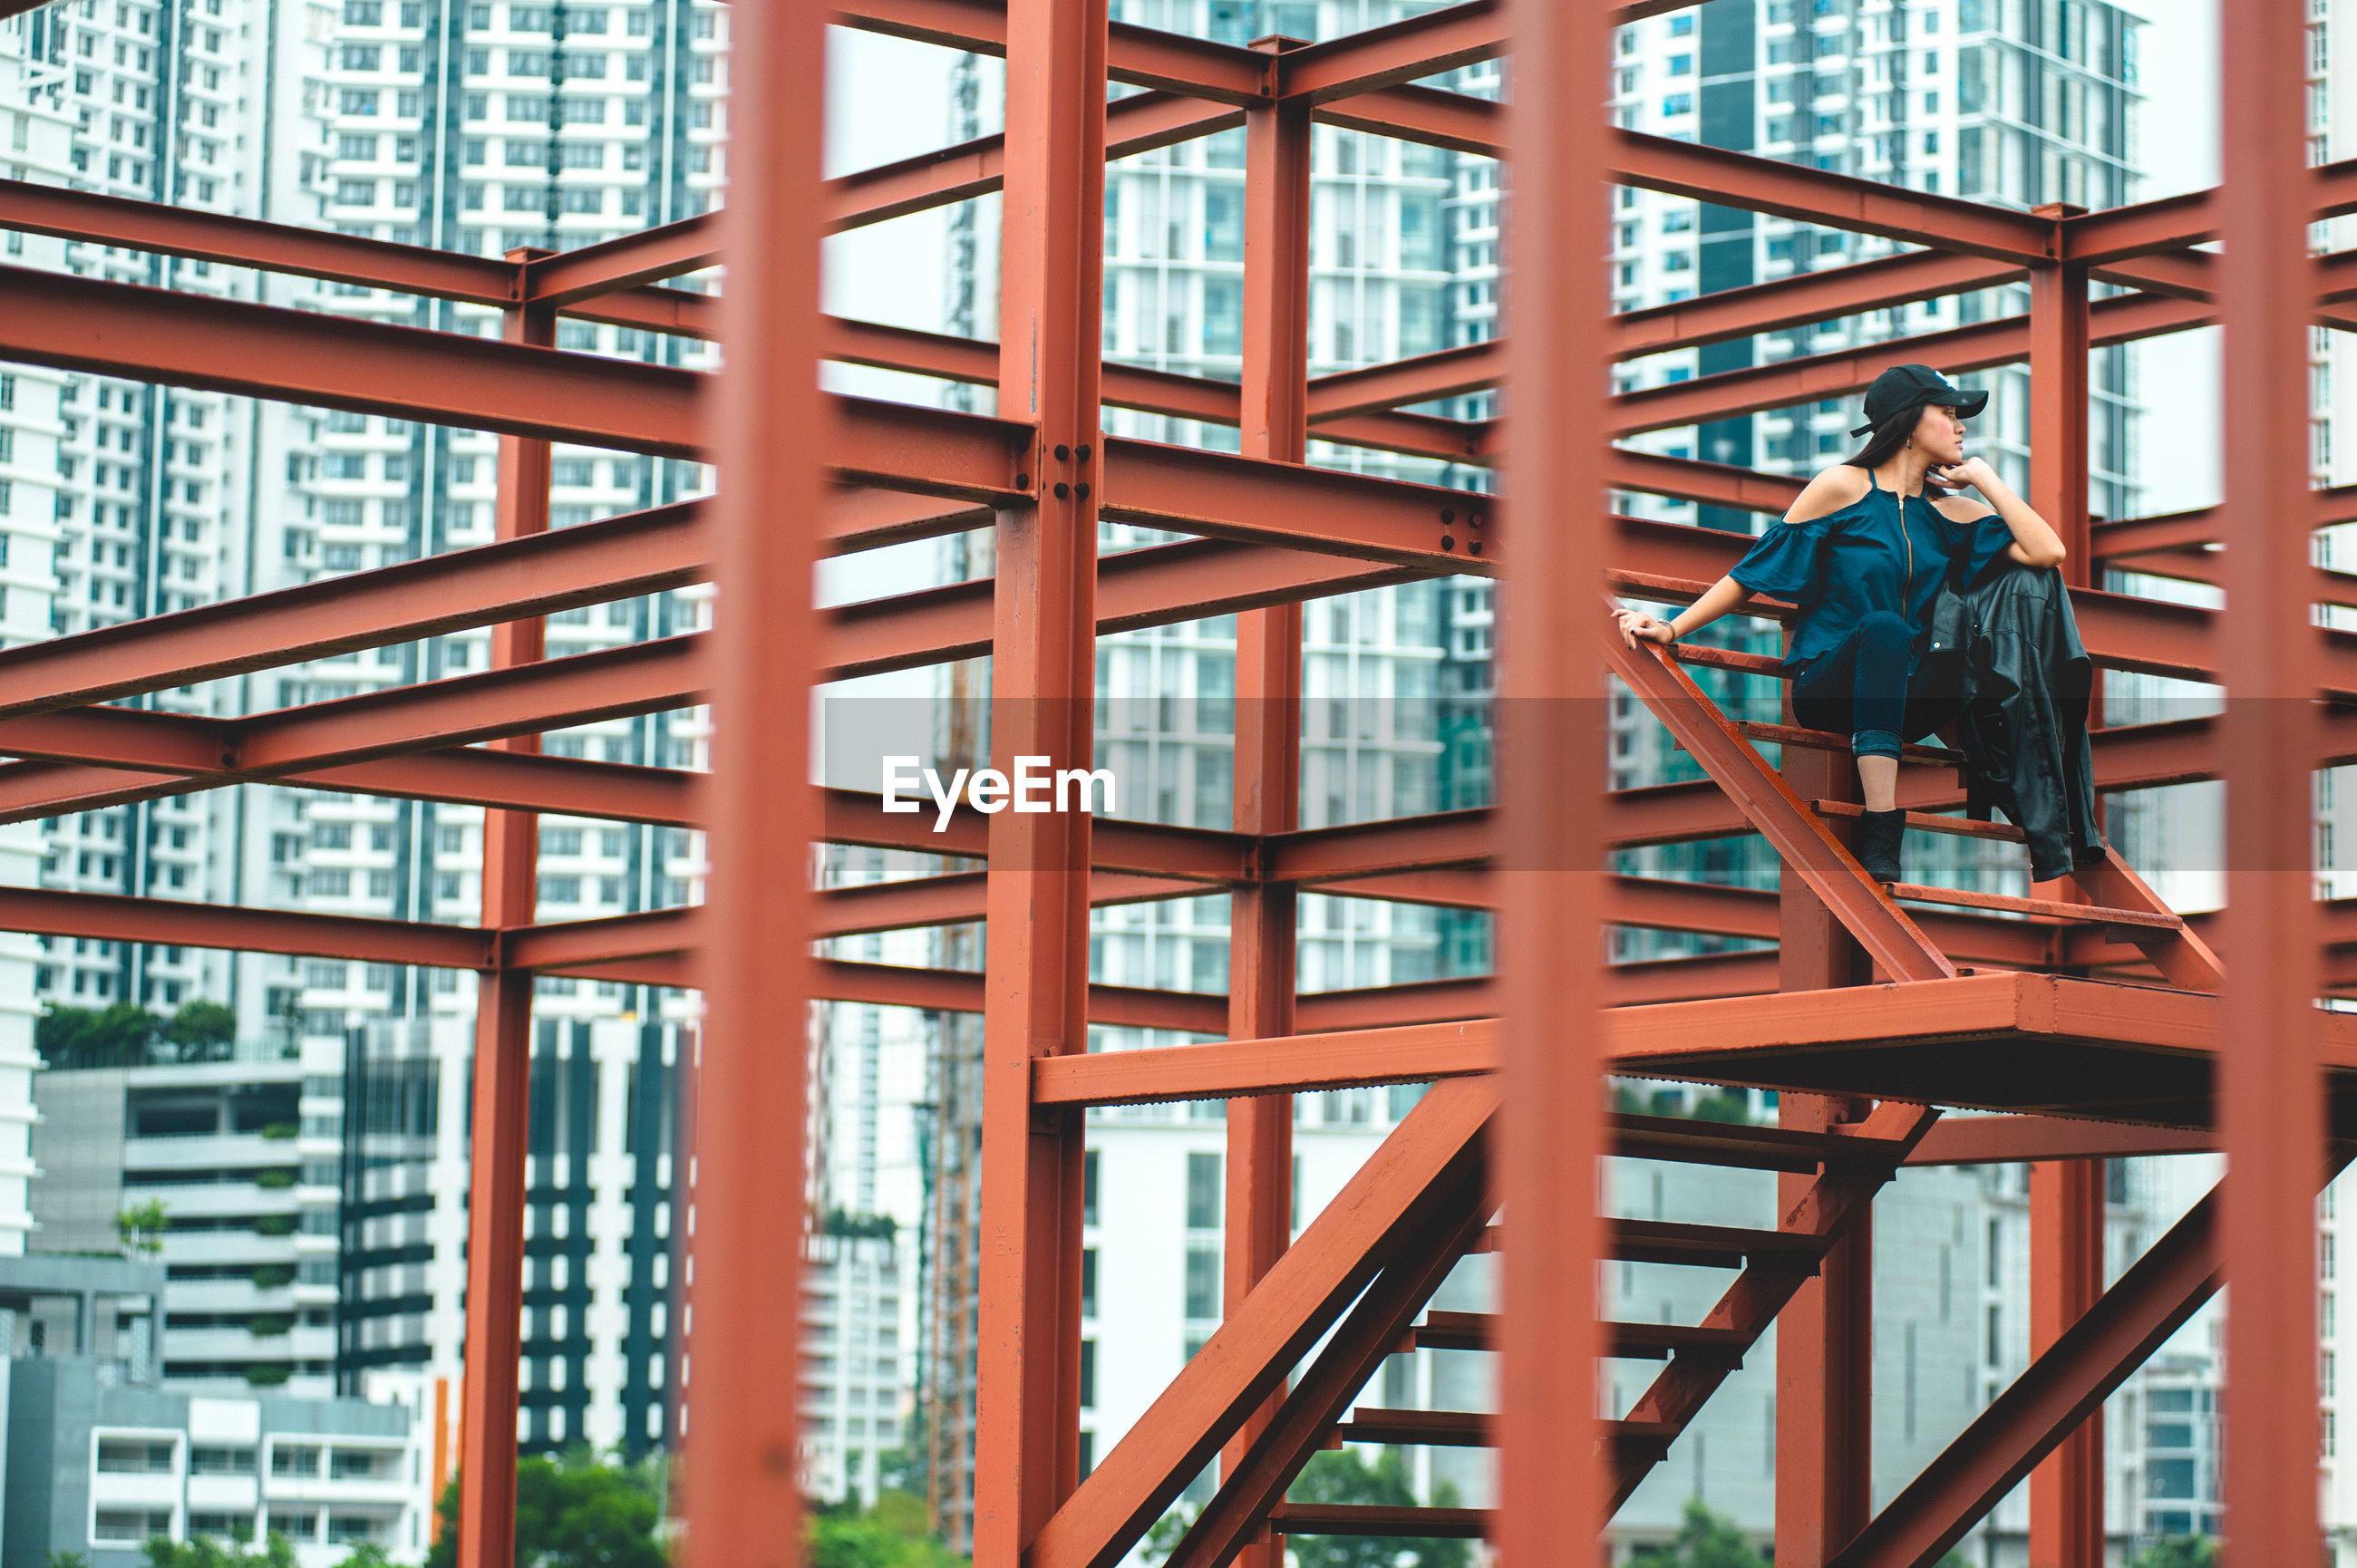 Portrait of young woman on built structure